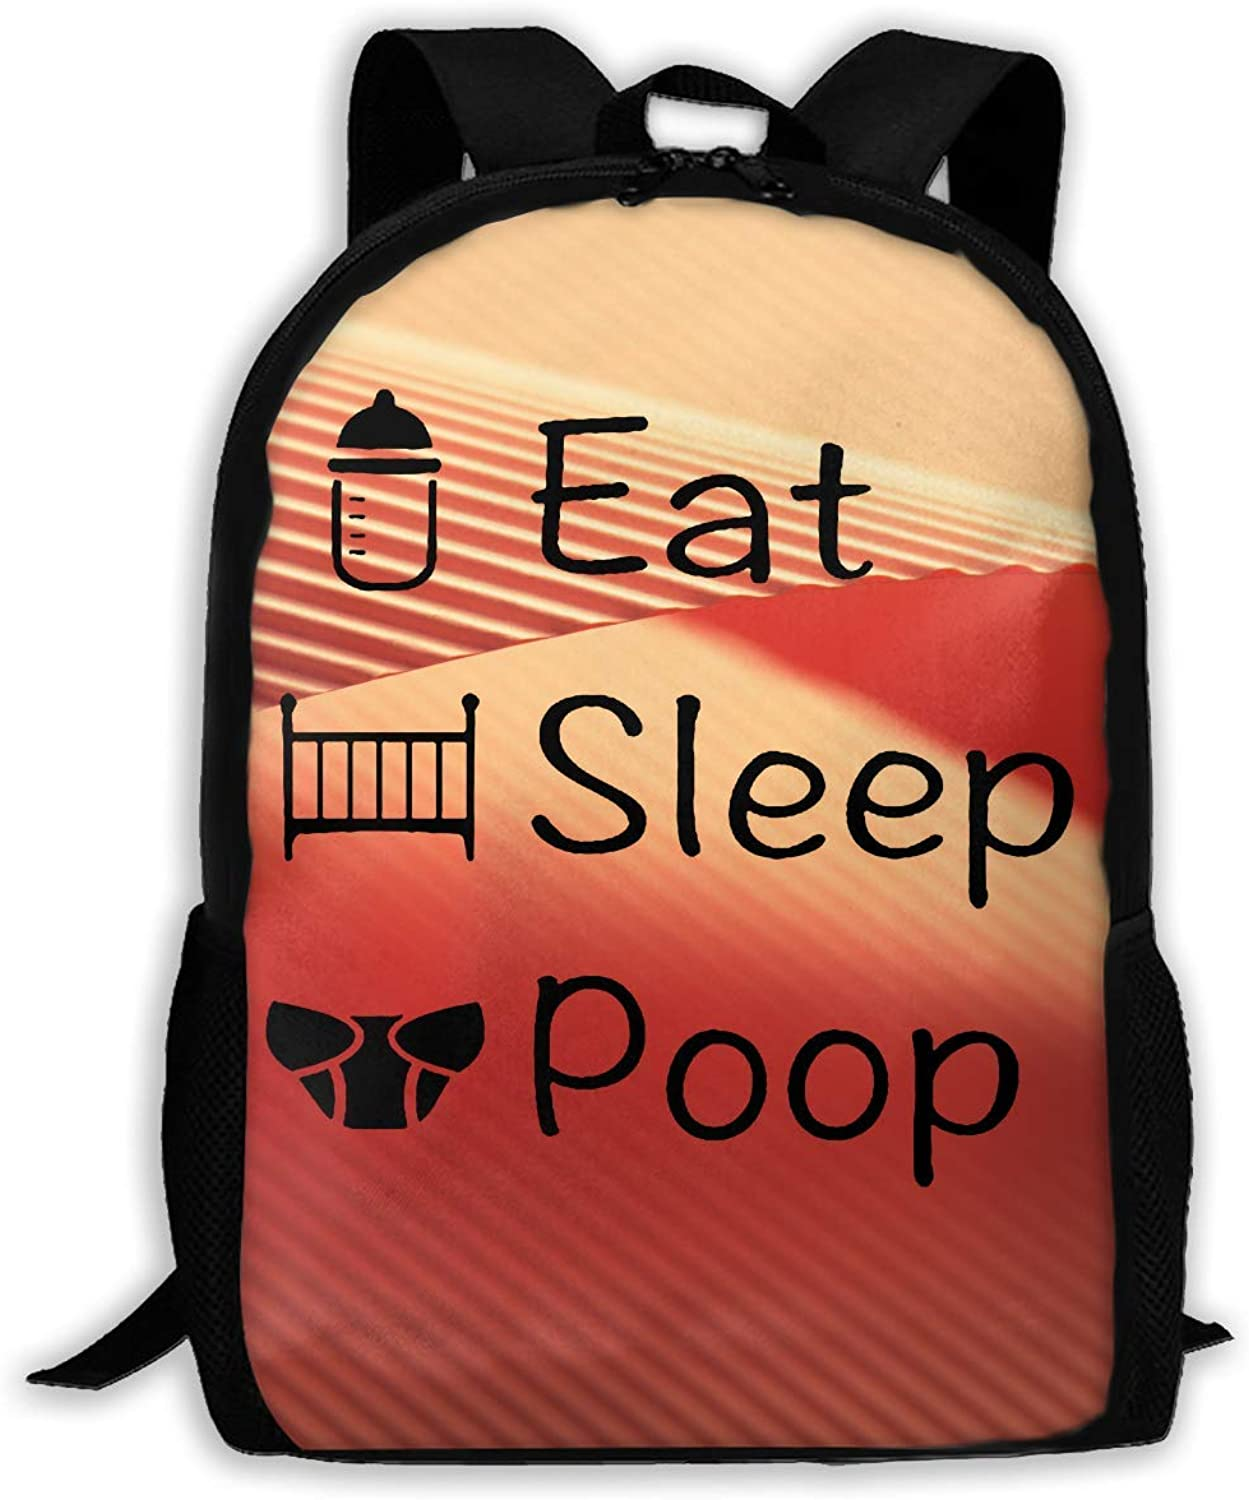 Fashion Eat Sleep Poop Printed Backpack Waterproof Canvas Canvas Canvas Hiking Bags for Men and damen B07QFVMRPH  Neues Design ecccc2